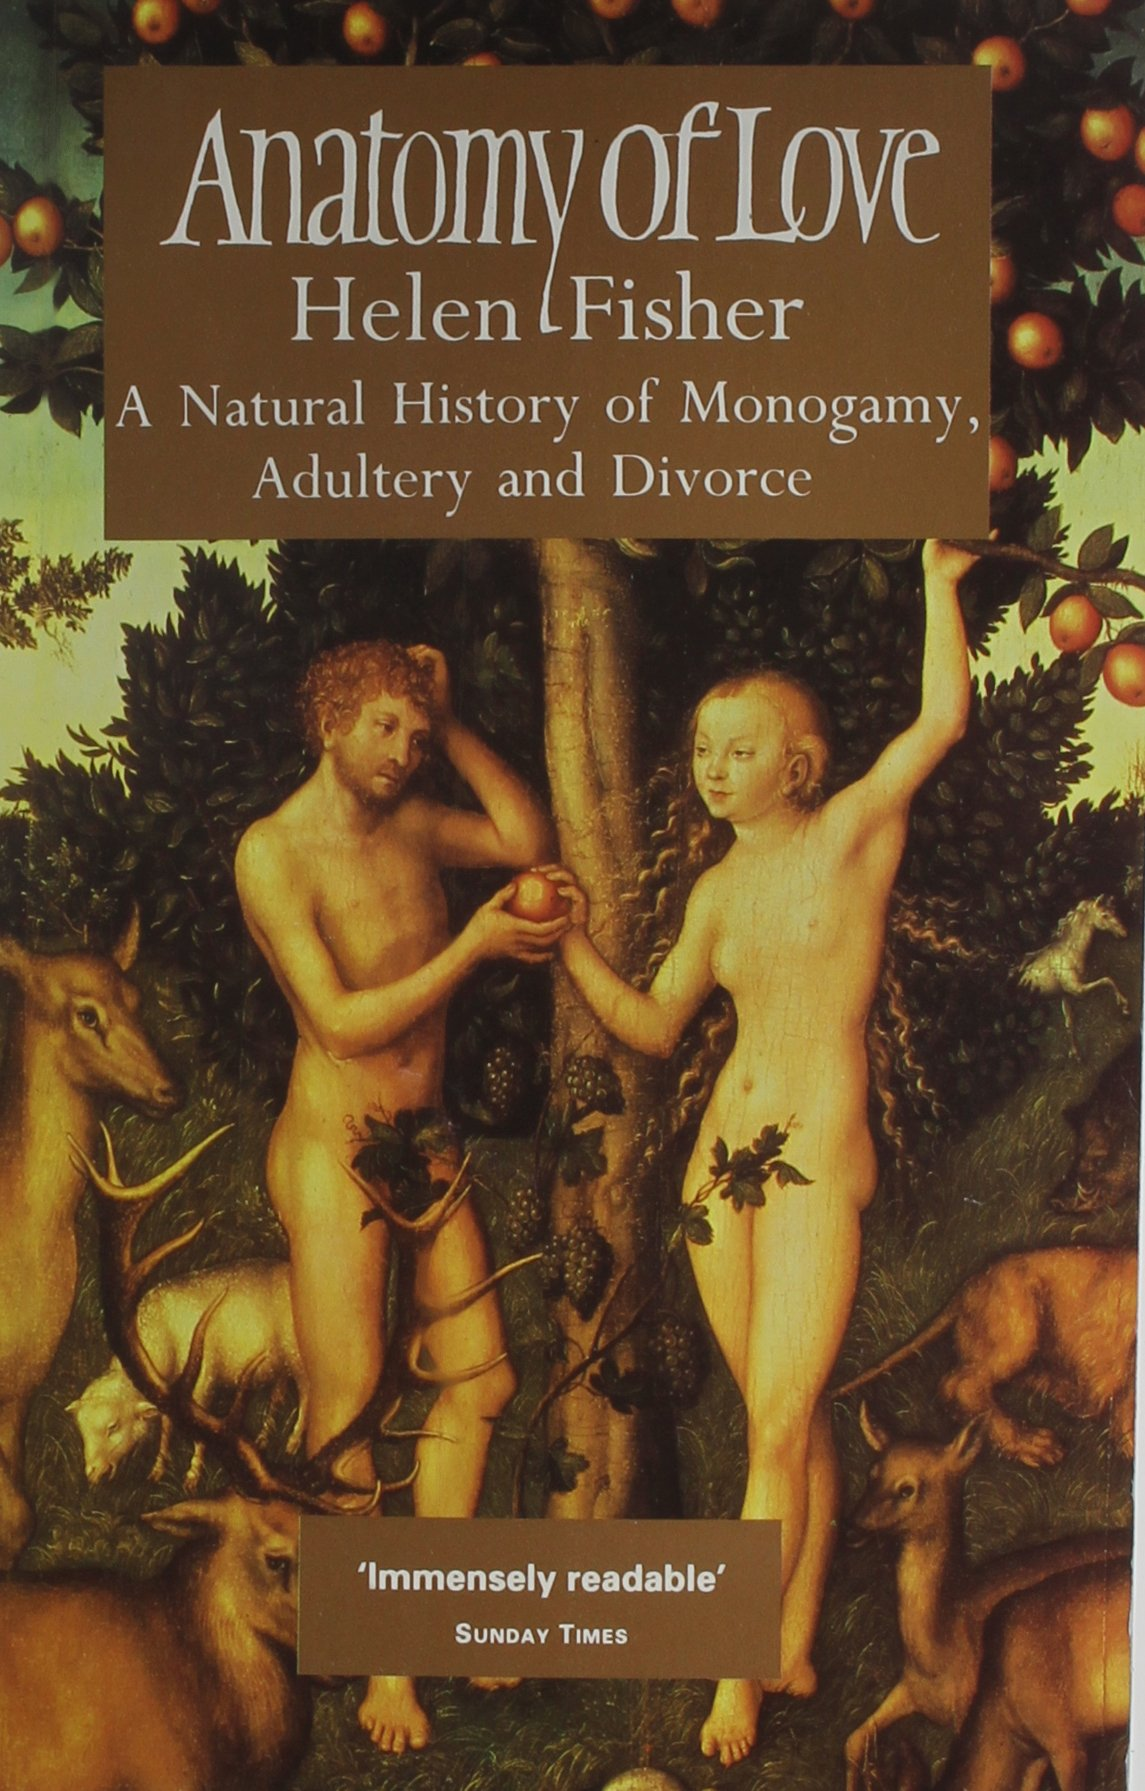 Amazon.com: Anatomy of Love the Natural History of M (9780671712563 ...